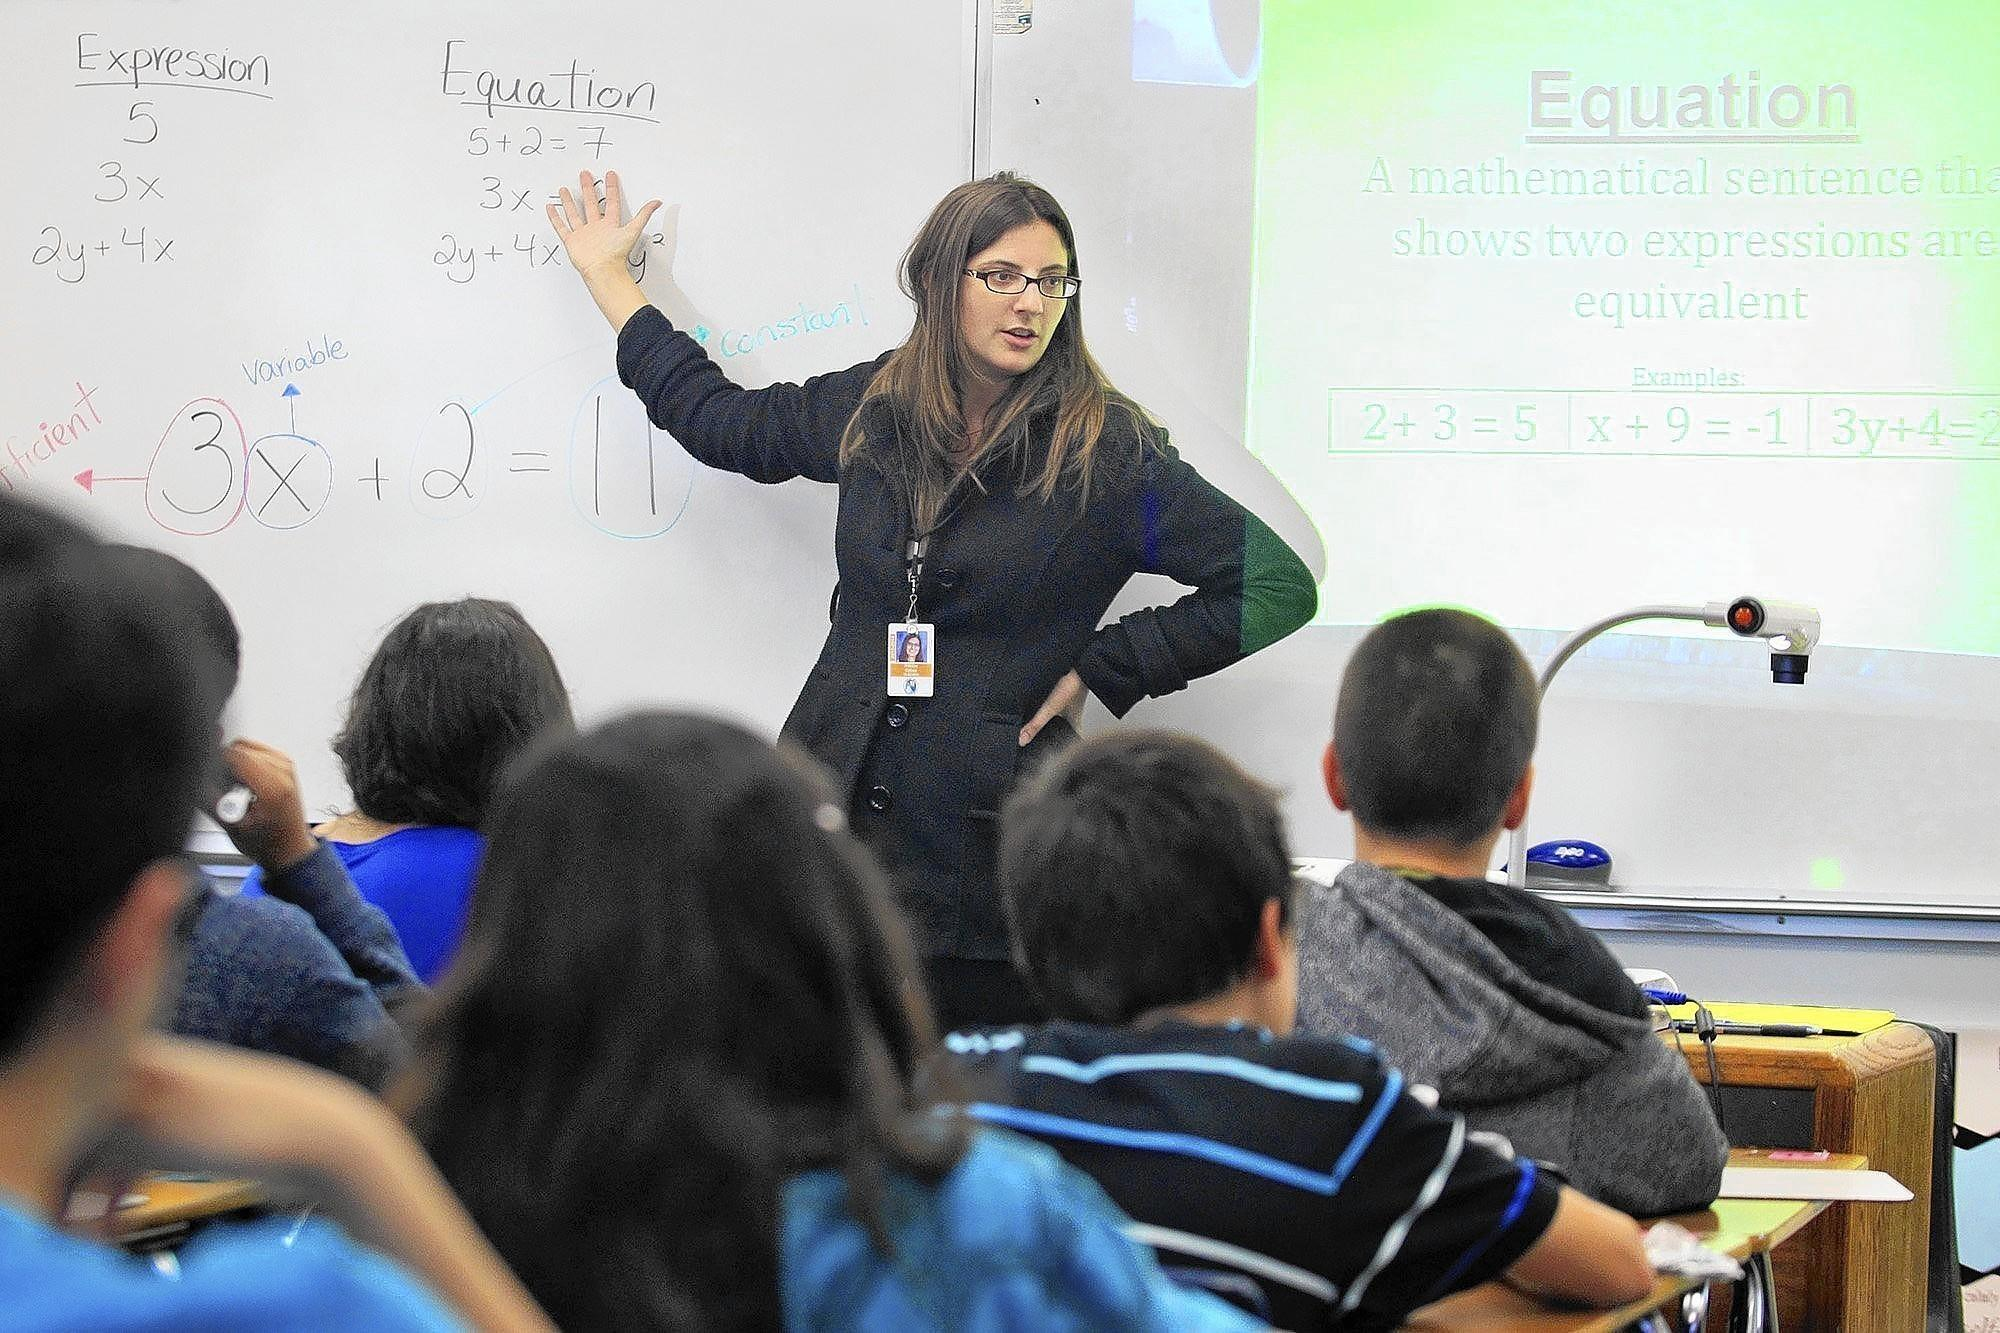 Math teacher Racine Cross instructs a class of seventh-graders during a class activity at Costa Mesa Middle School. Newport-Mesa is implementing new math pathways and strategies that align with new Common Core state standards in its middle schools this year. The new standards offer a more hands-on approach to learning.